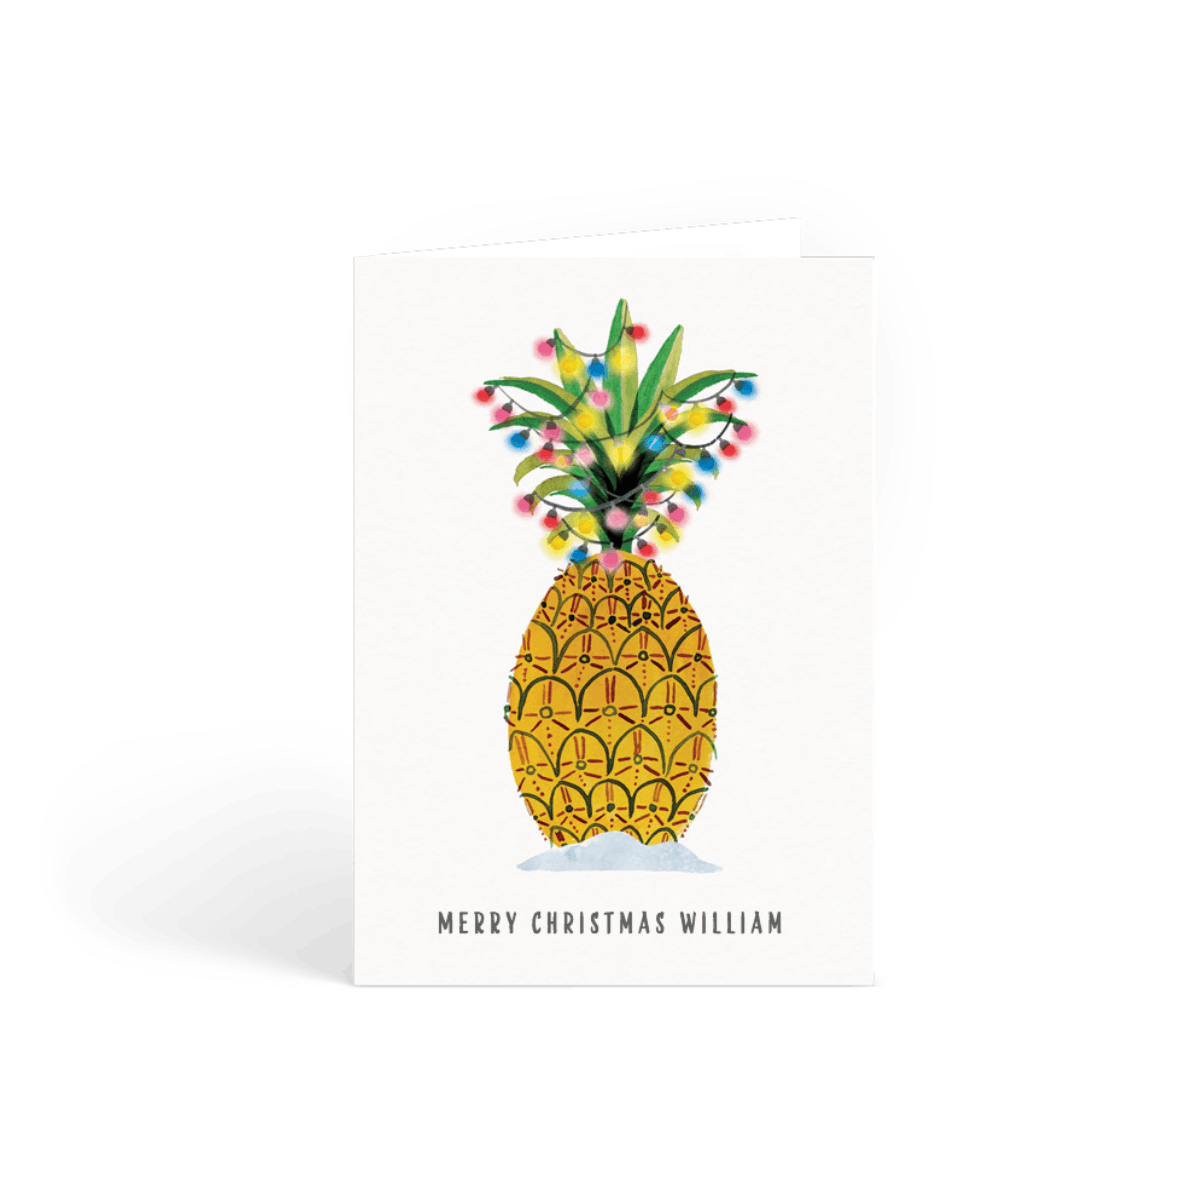 Https%3a%2f%2fwww.papier.com%2fproduct image%2f14331%2f2%2fchristmas pineapple 3827 avant 1542374655.png?ixlib=rb 1.1